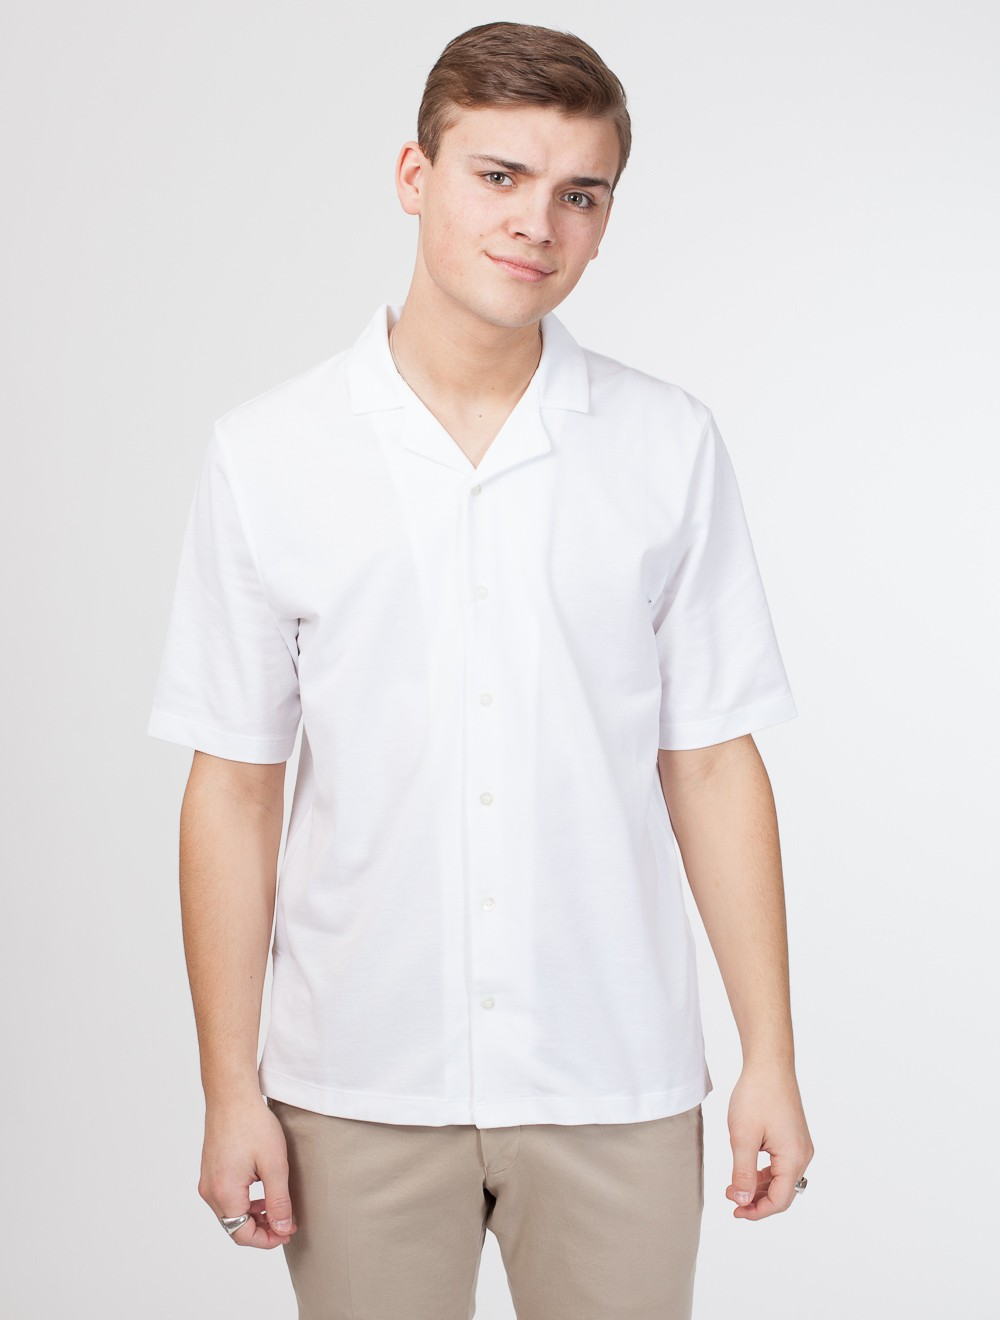 c78c9175 SUNSPEL | Short Sleeve Pique Shirt White - T-skjorte